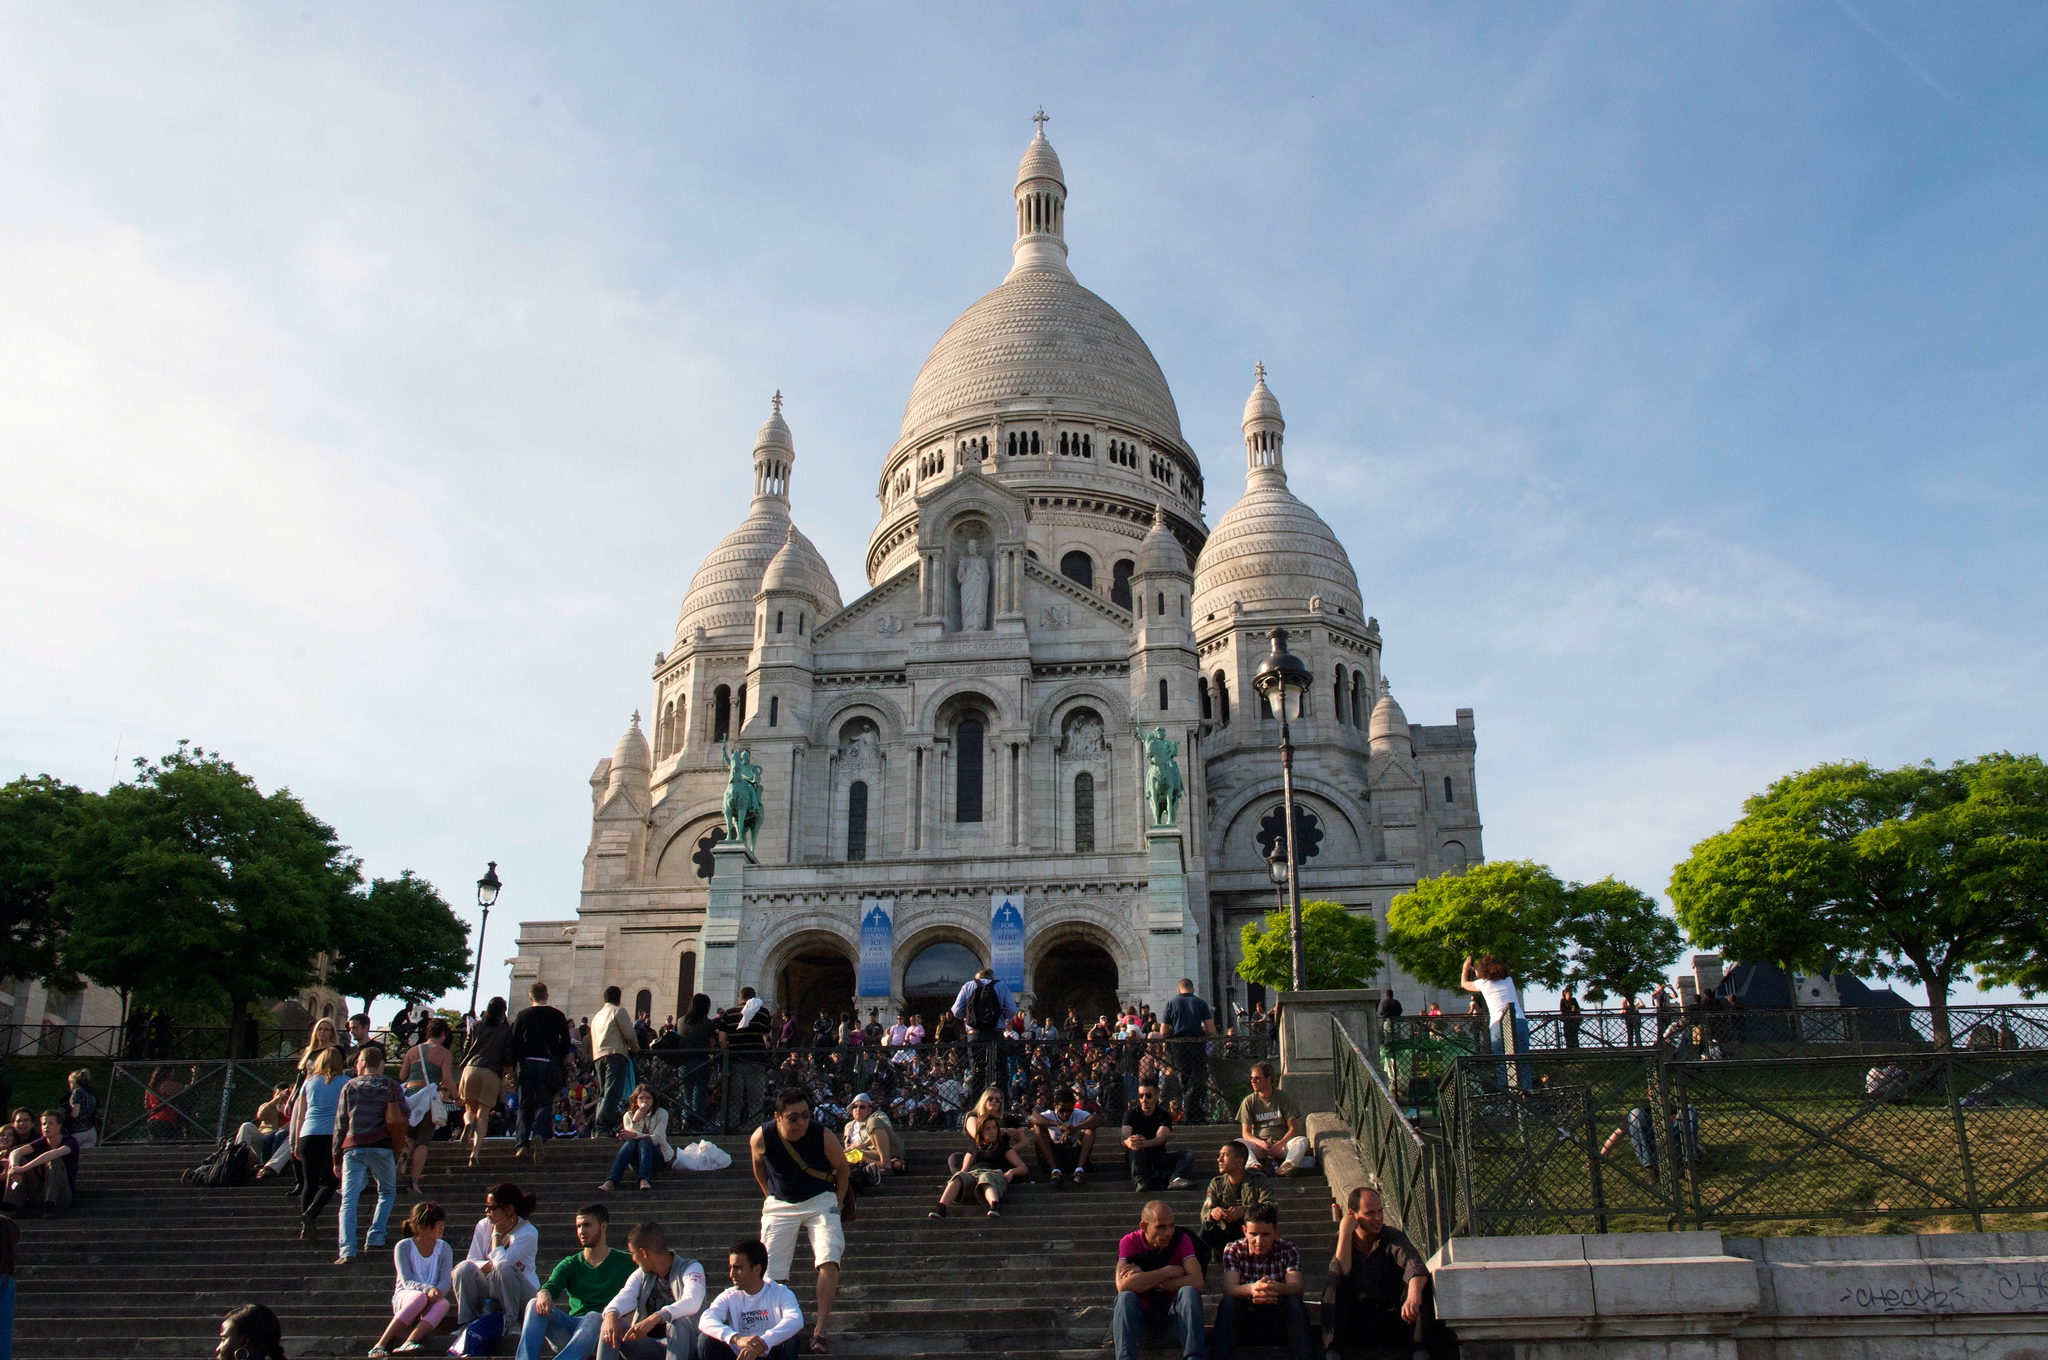 Basilica of the Sacré Coeur in Paris. Photo by alphacityguides